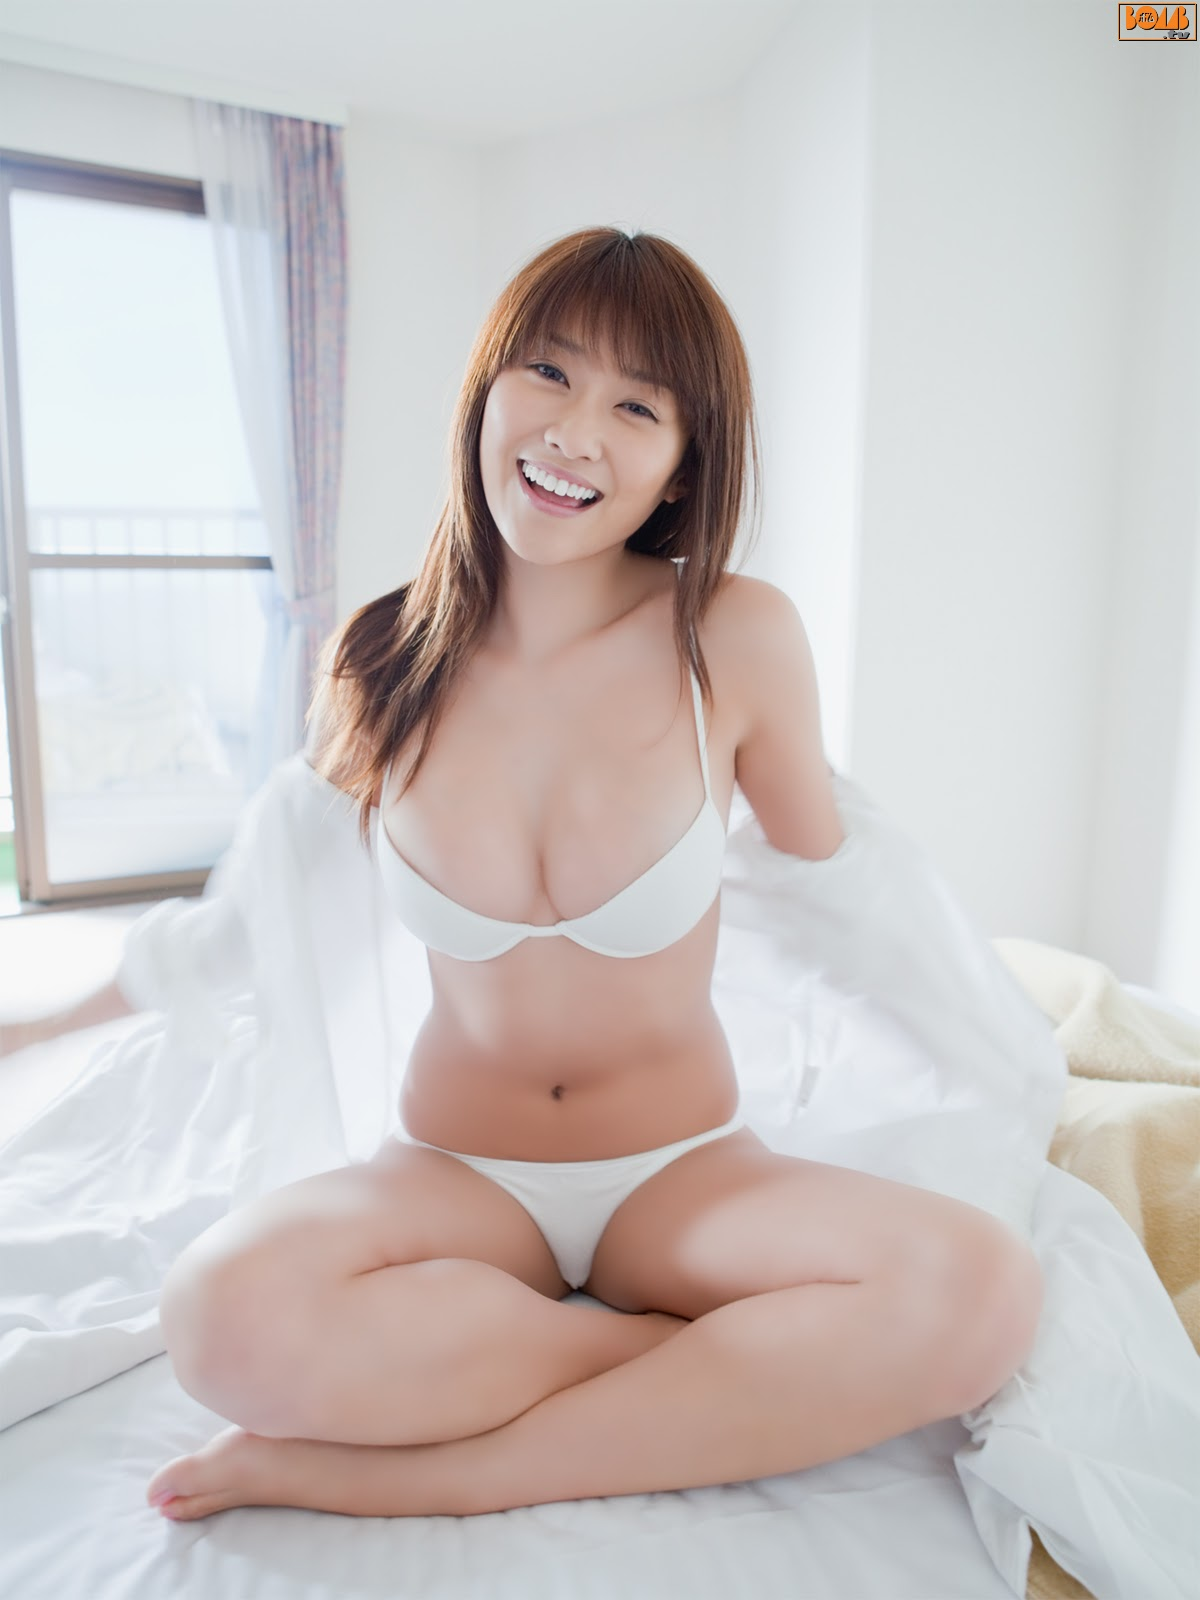 All kinds of redweathered skin sweaty skin smiles in the morning light Mikie Hara005